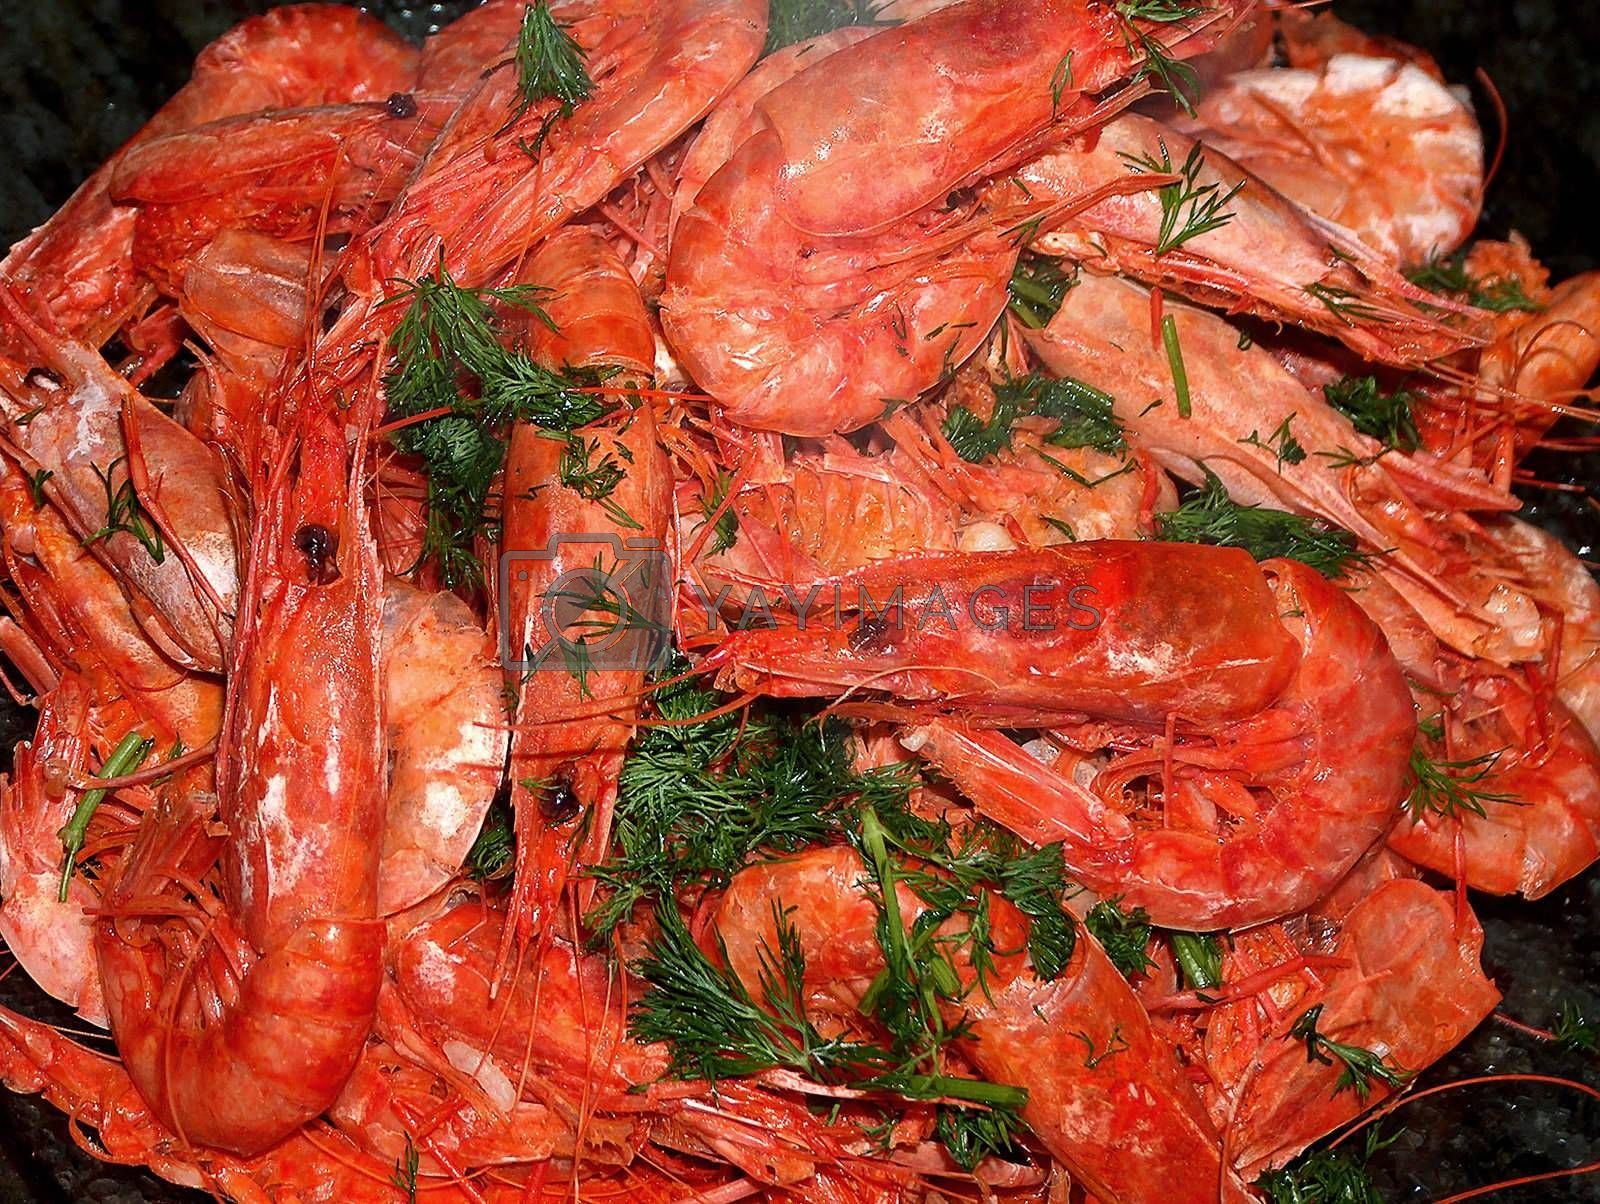 big red Mediterranean shrimps topped with fresh herbs